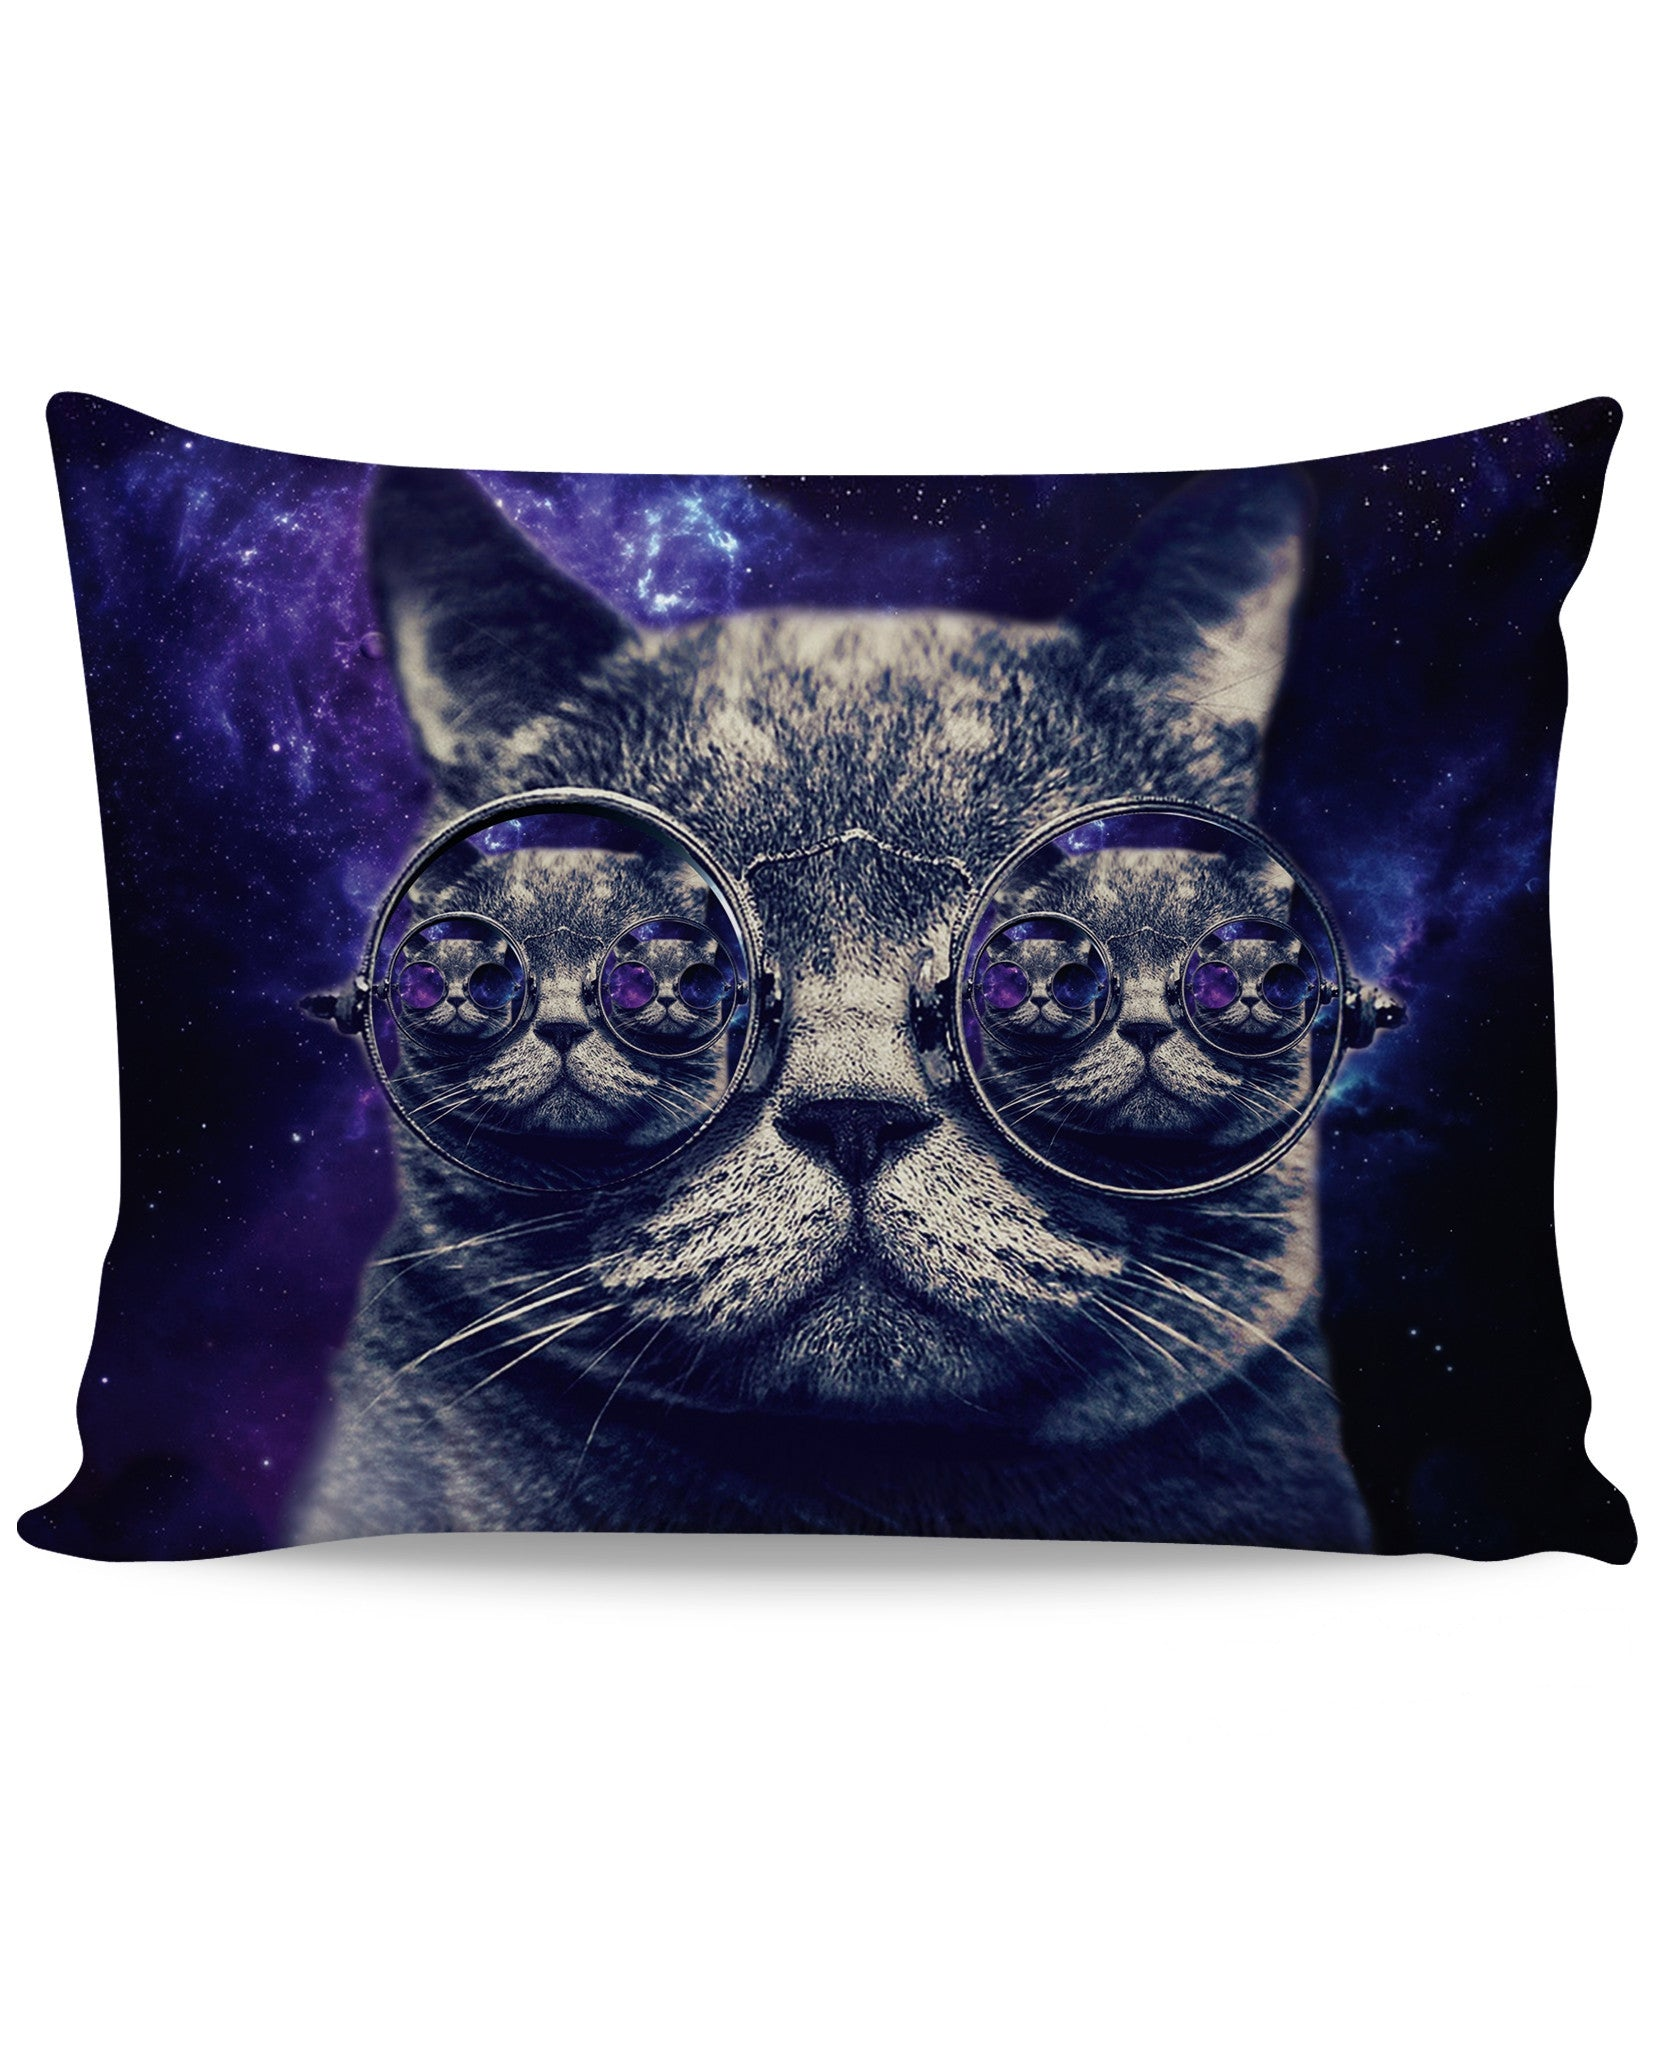 Hipster Cat Pillow Case